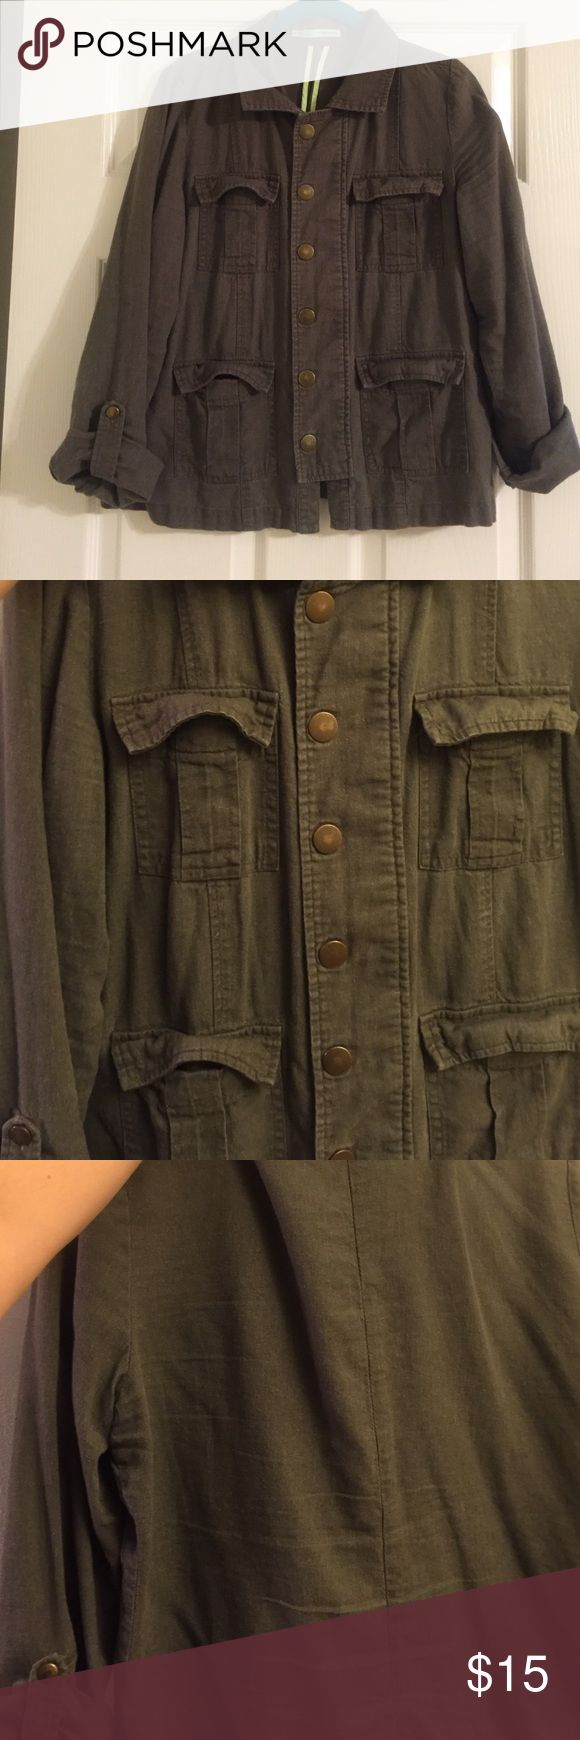 Maurices linen utility jacket Snap up front and sleeves. 4 pocket jacket. Dark olive green color. No stains or holes. Looks really cute over dresses Maurices Jackets & Coats Utility Jackets